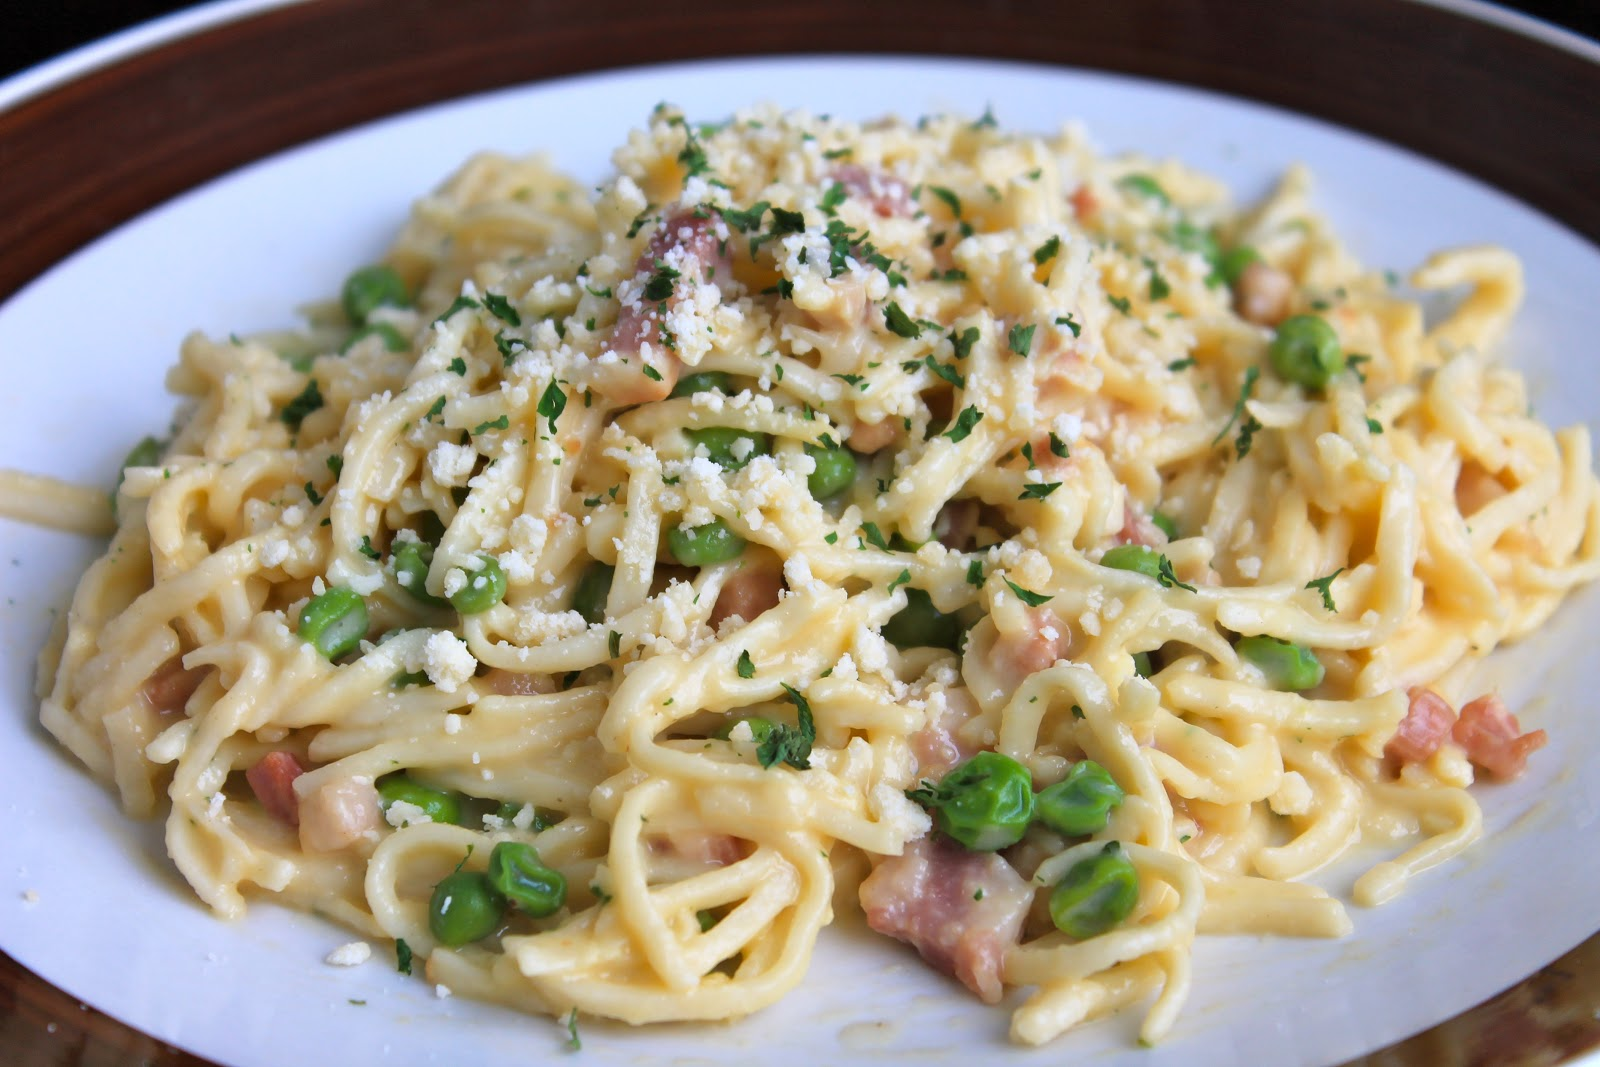 The Cultural Dish: Pasta alla Carbonara